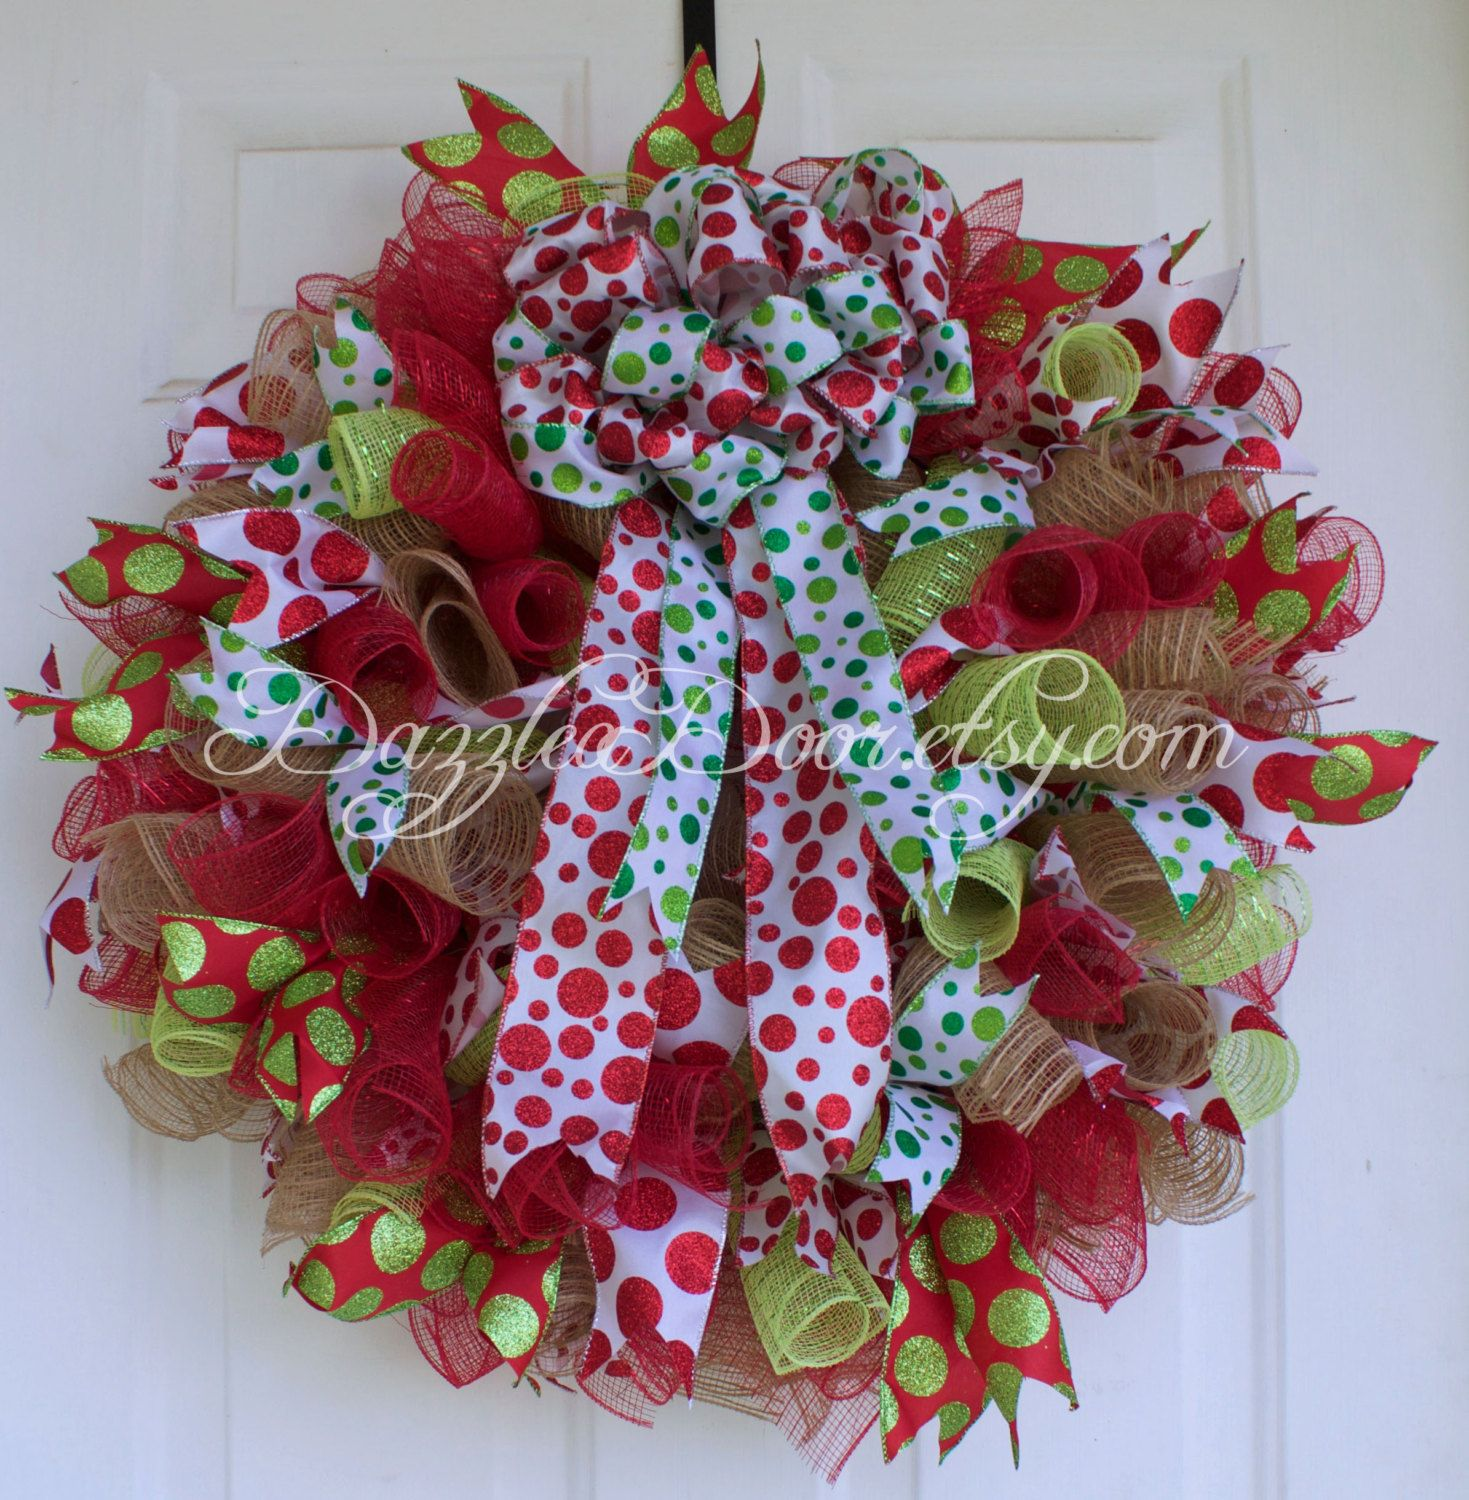 Christmas Wreath, Curly Q Deco Mesh Wreath in Red, Lime Green and Jute with  Polk-a-dot bow